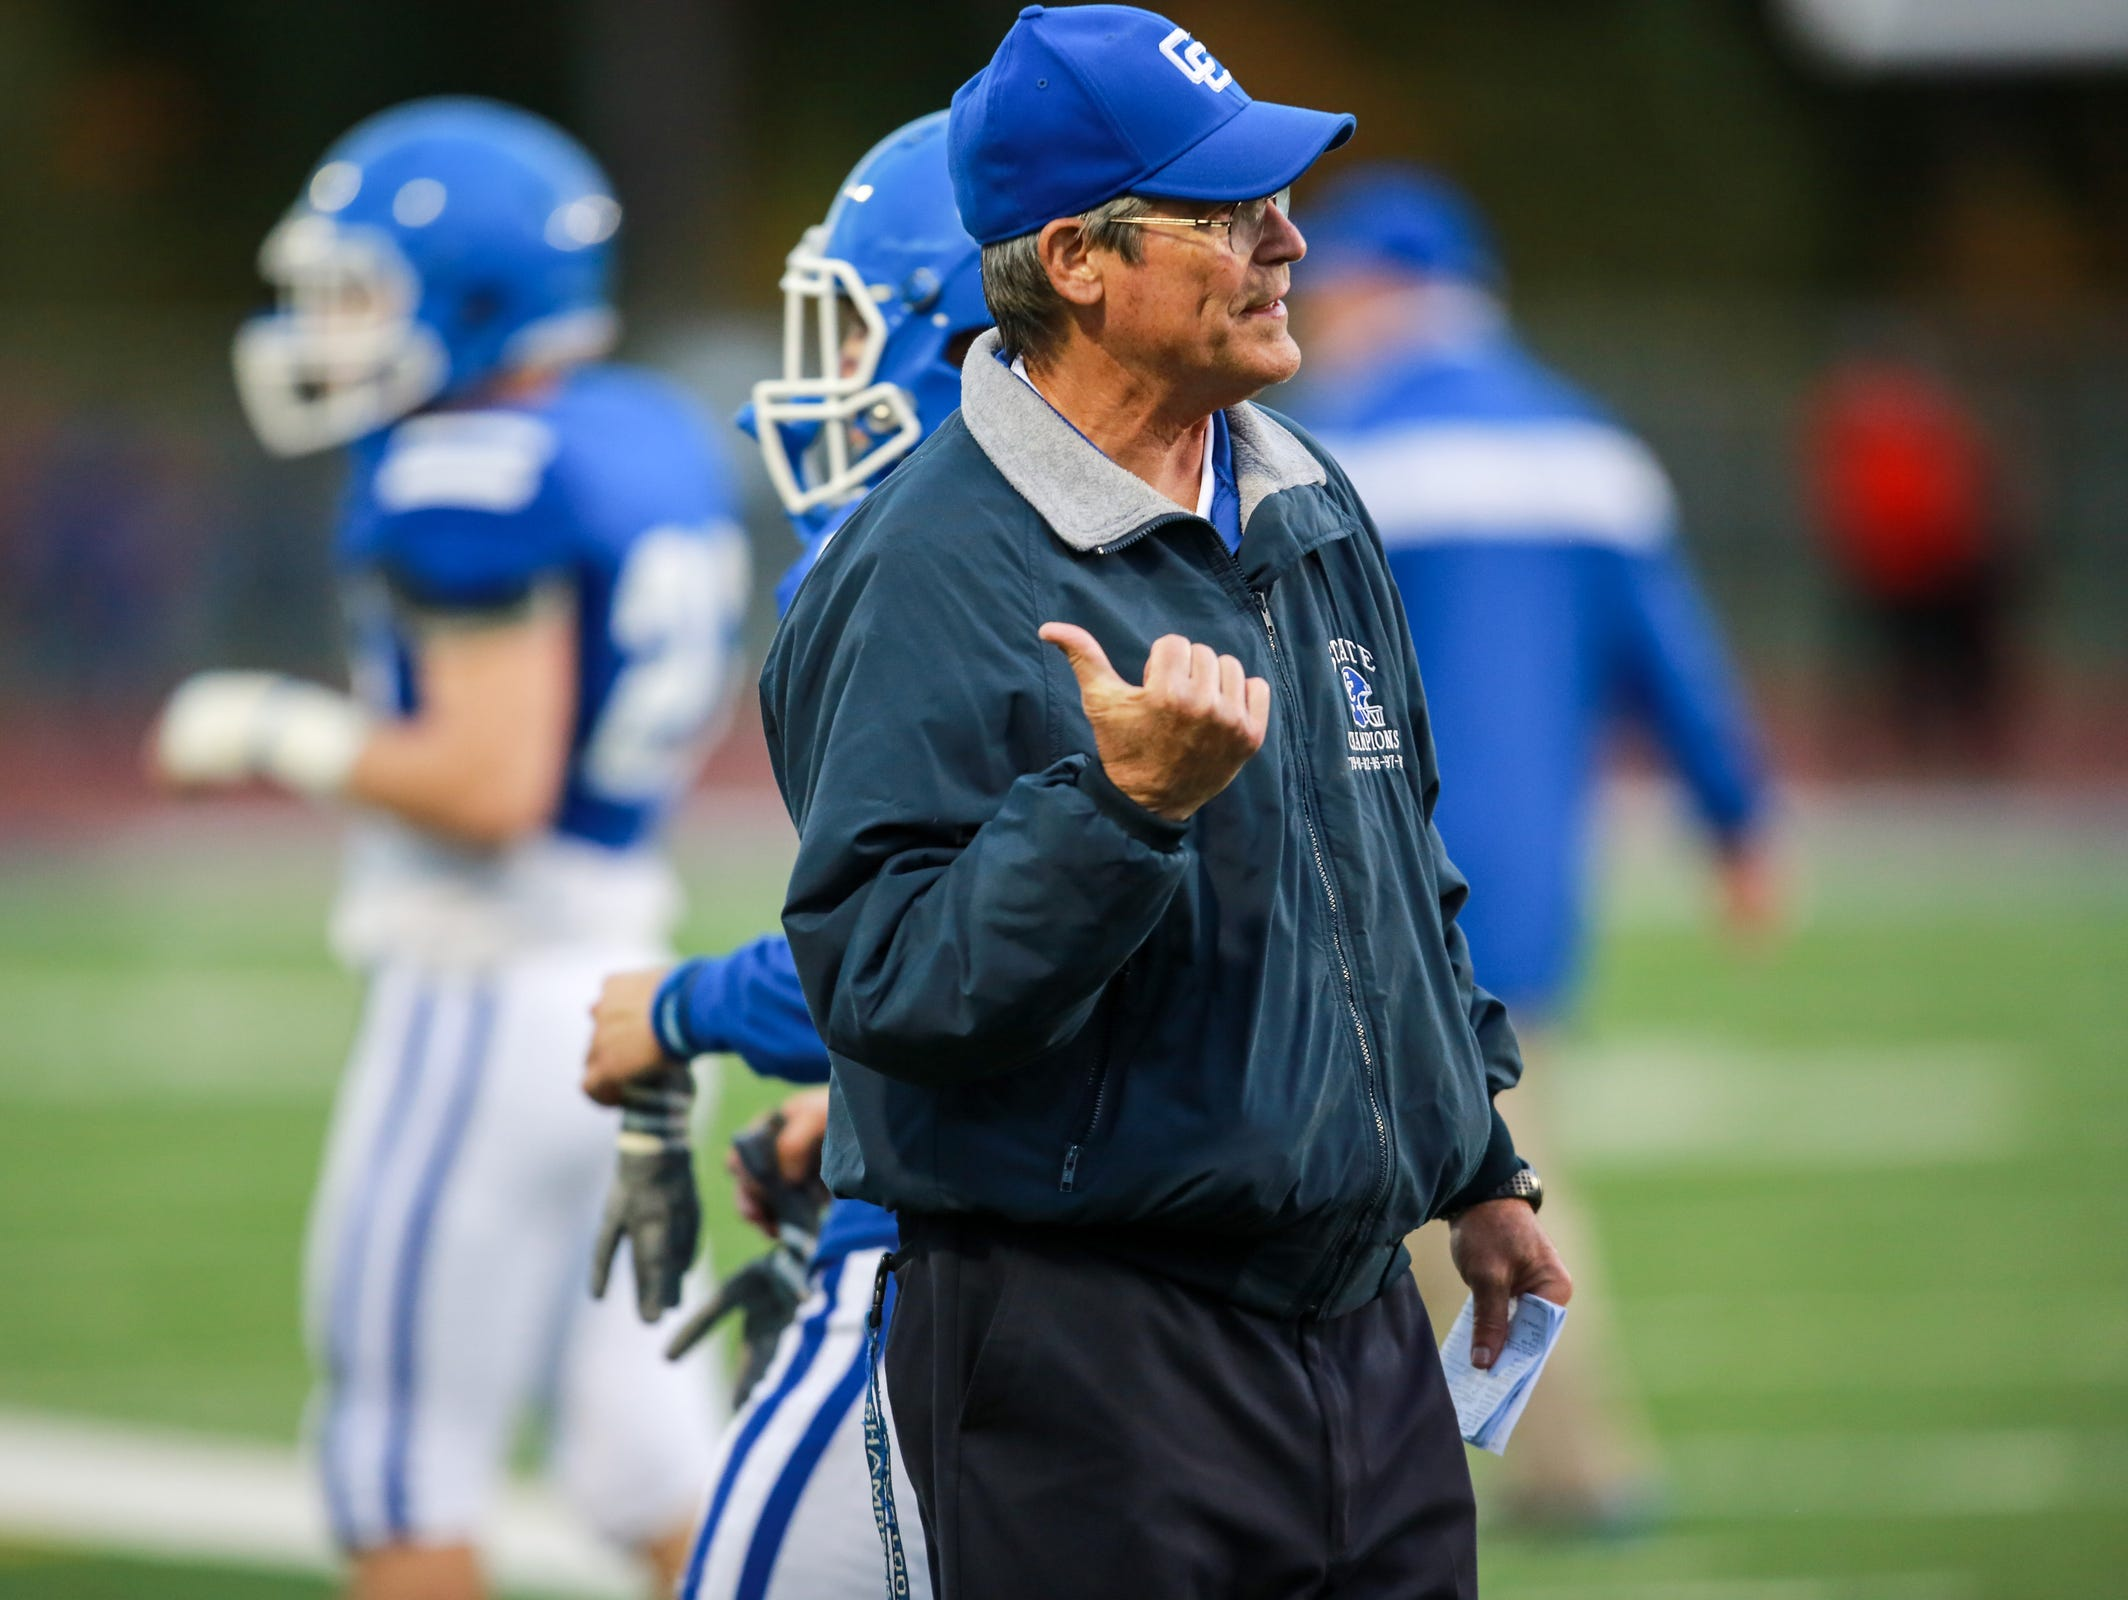 Novi Detroit Catholic Central Head Coach Tom Mach talks to other coaches before the start of the football game against Orchard Lake St. Mary's at Catholic Central in Novi, Mich. on Friday, Oct. 9, 2015.